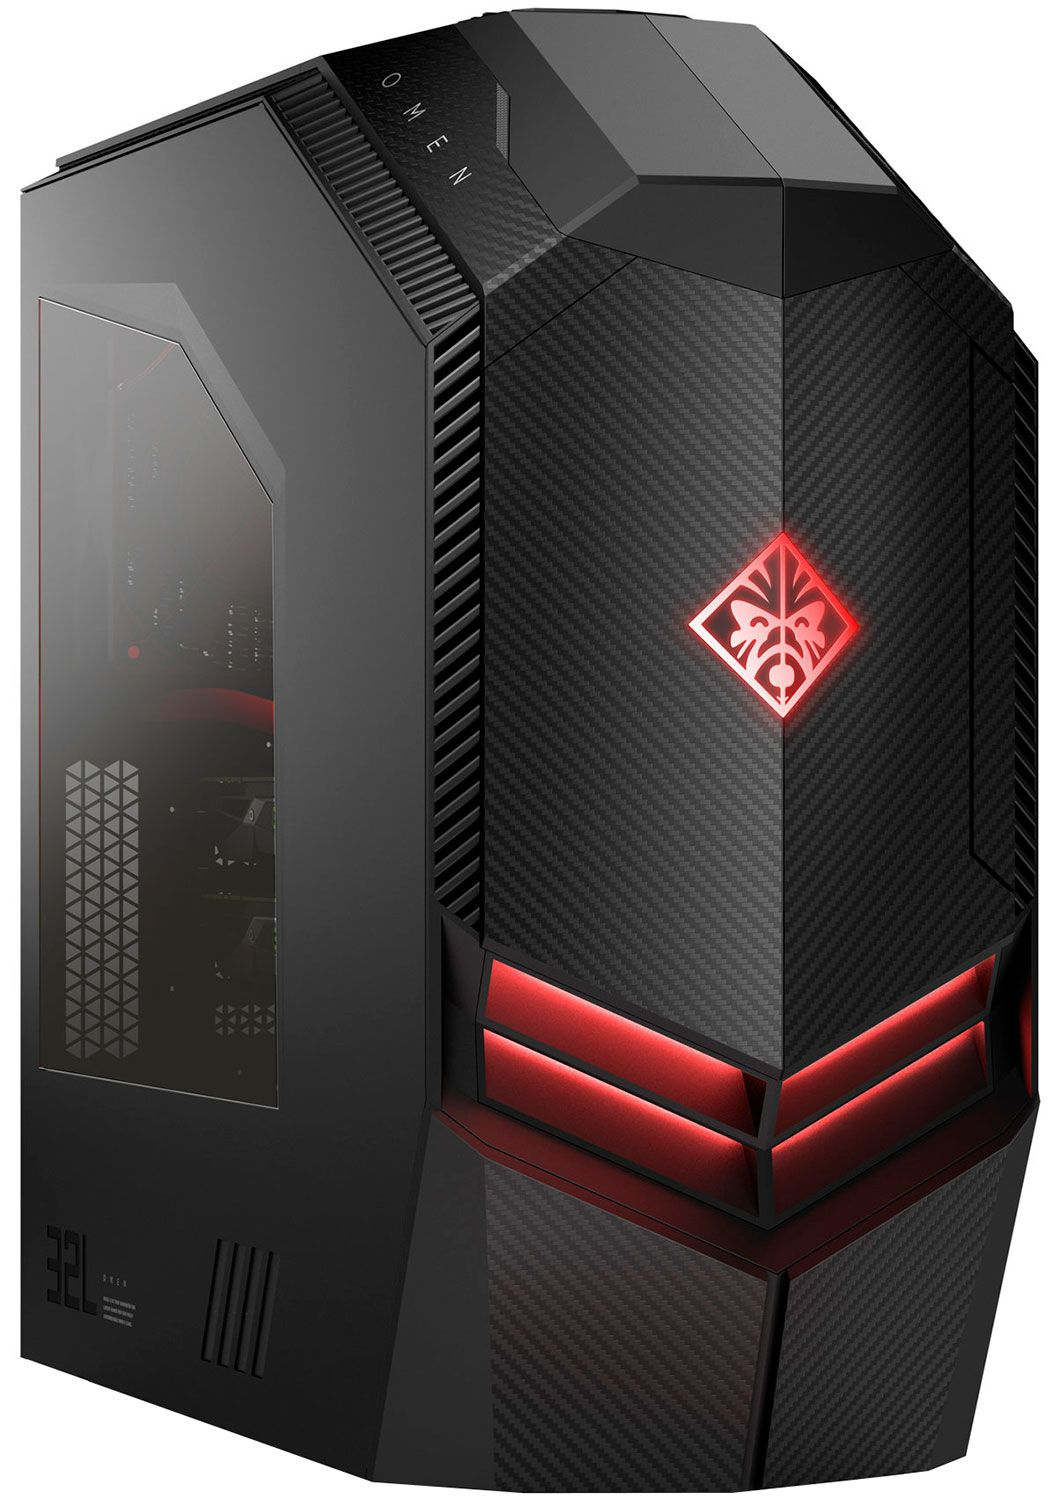 HP OMEN Black Gaming Desktop Computer Intel Core i7-9700K 16GB RAM 2TB HD +  512GB SSD, NVIDIA GeForce RTX 2080 8GB